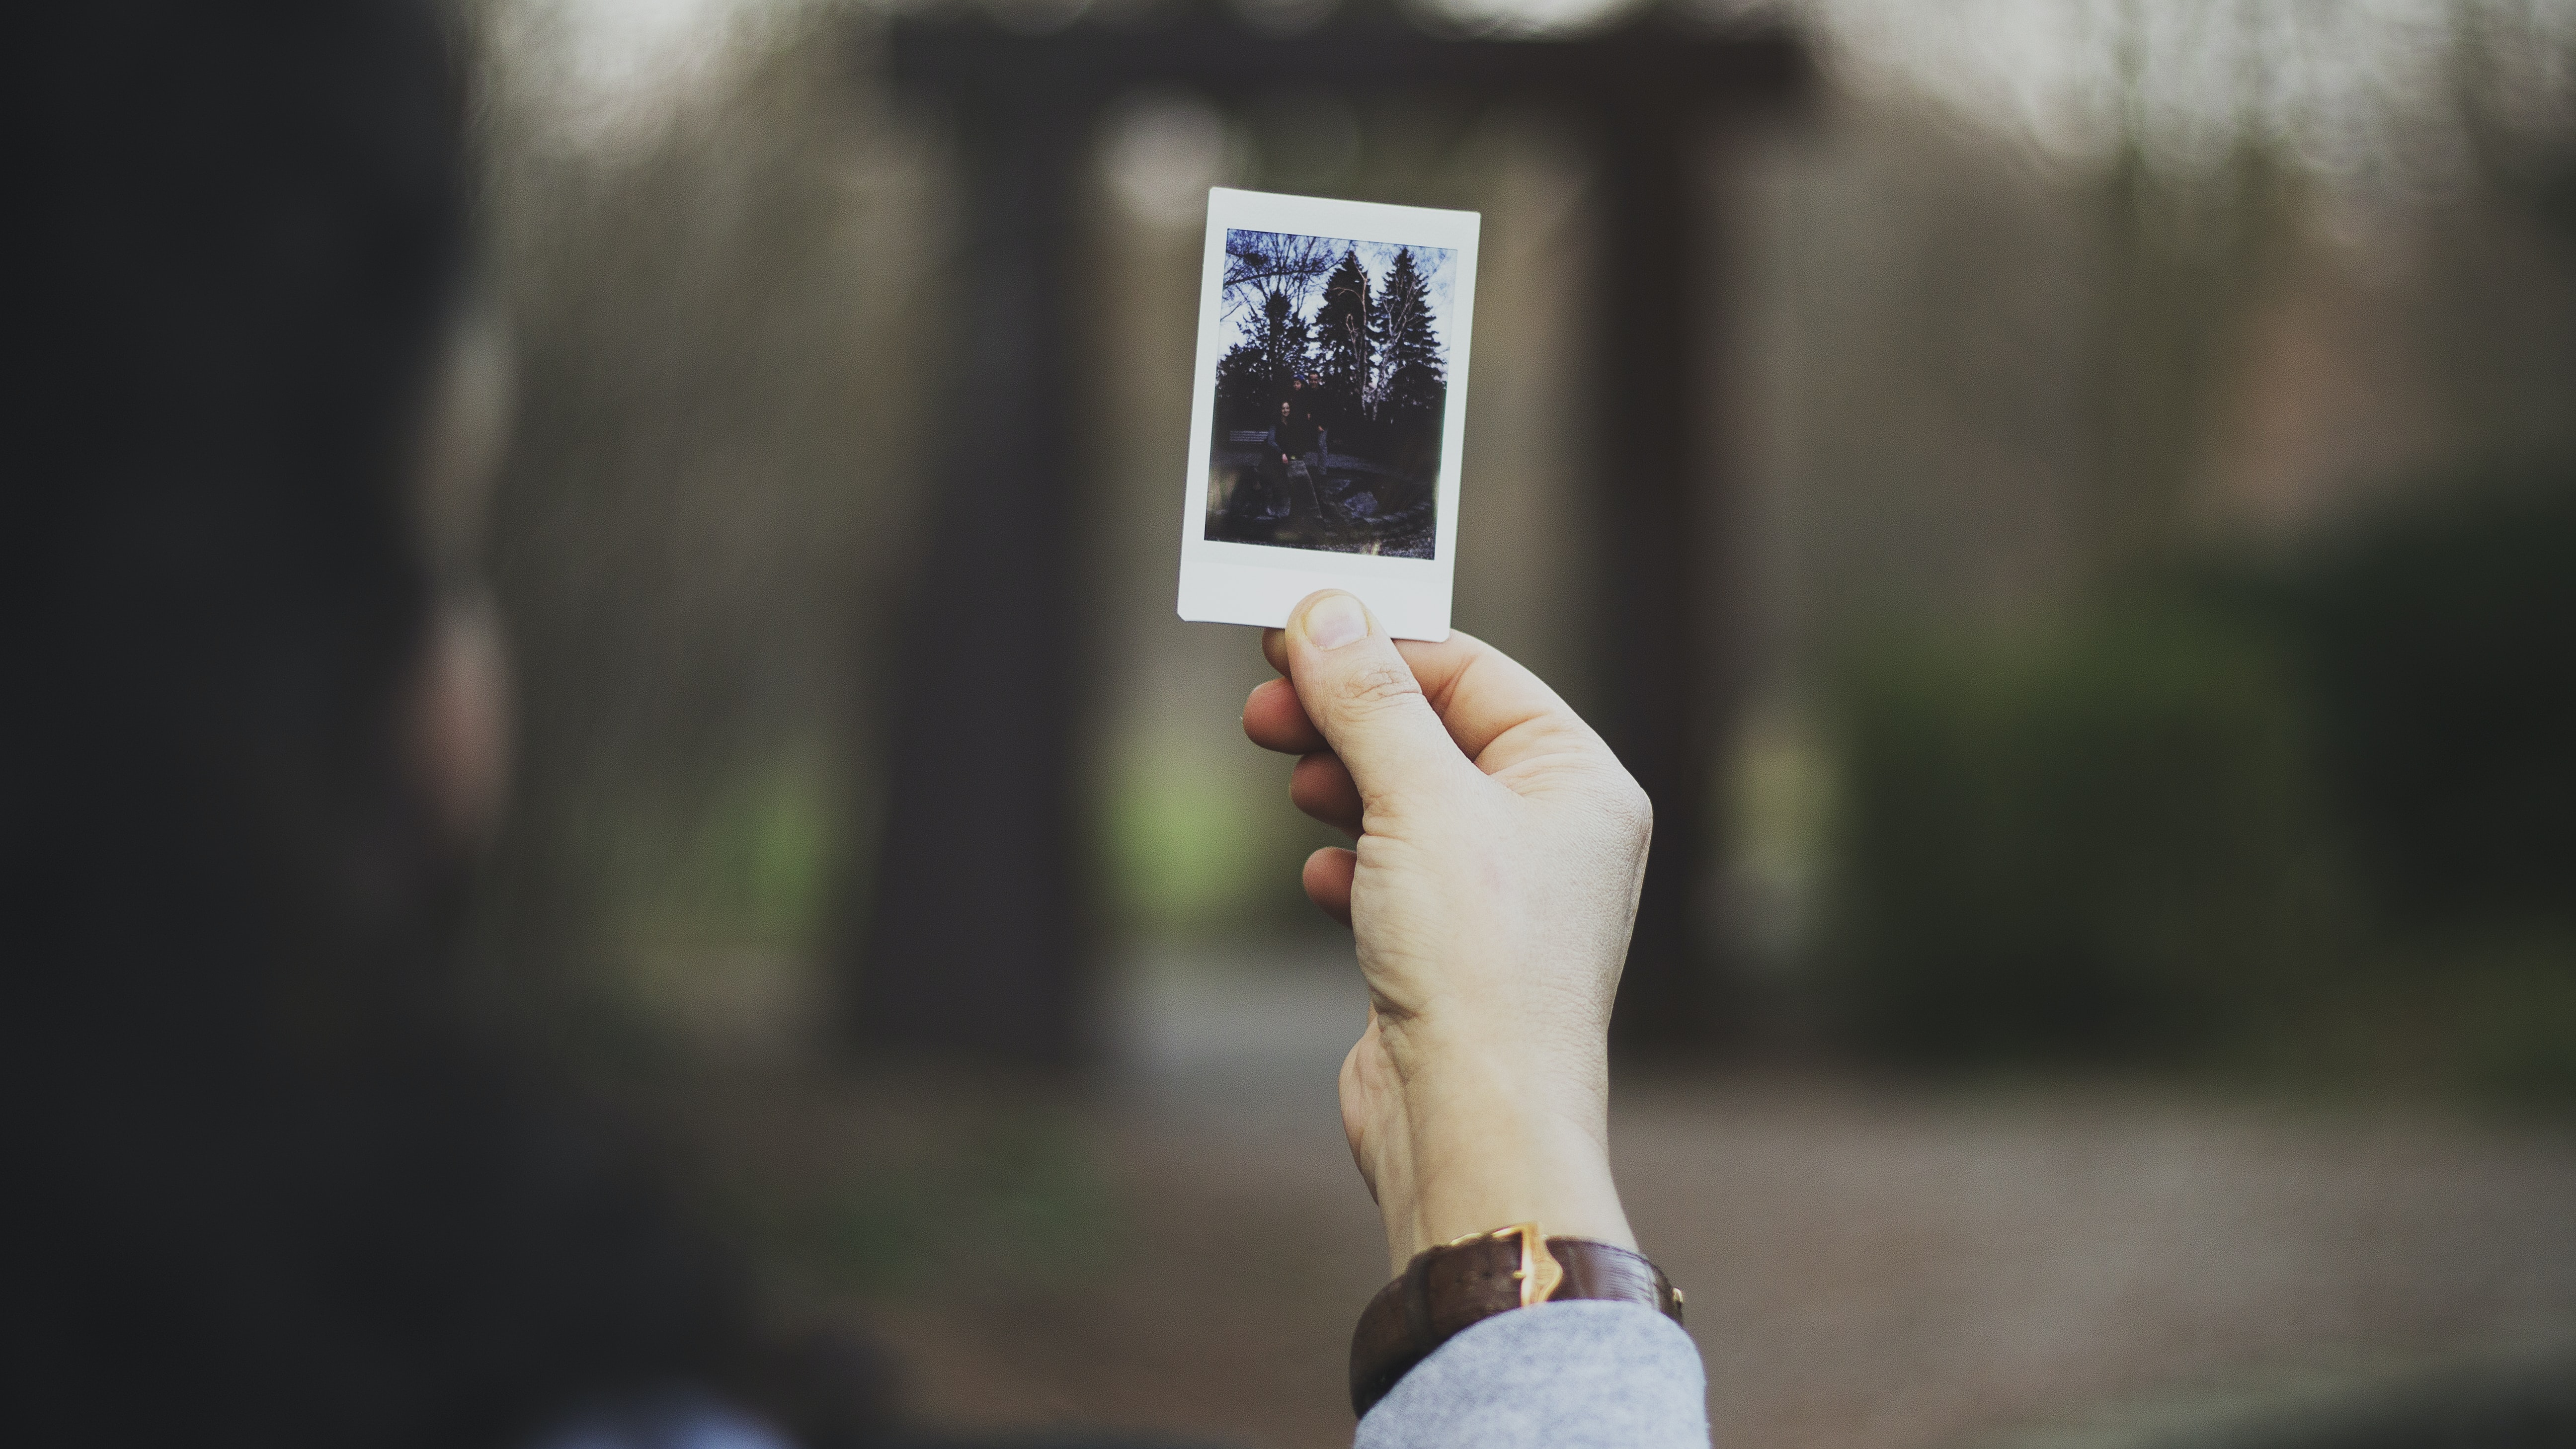 person holding photo of trees